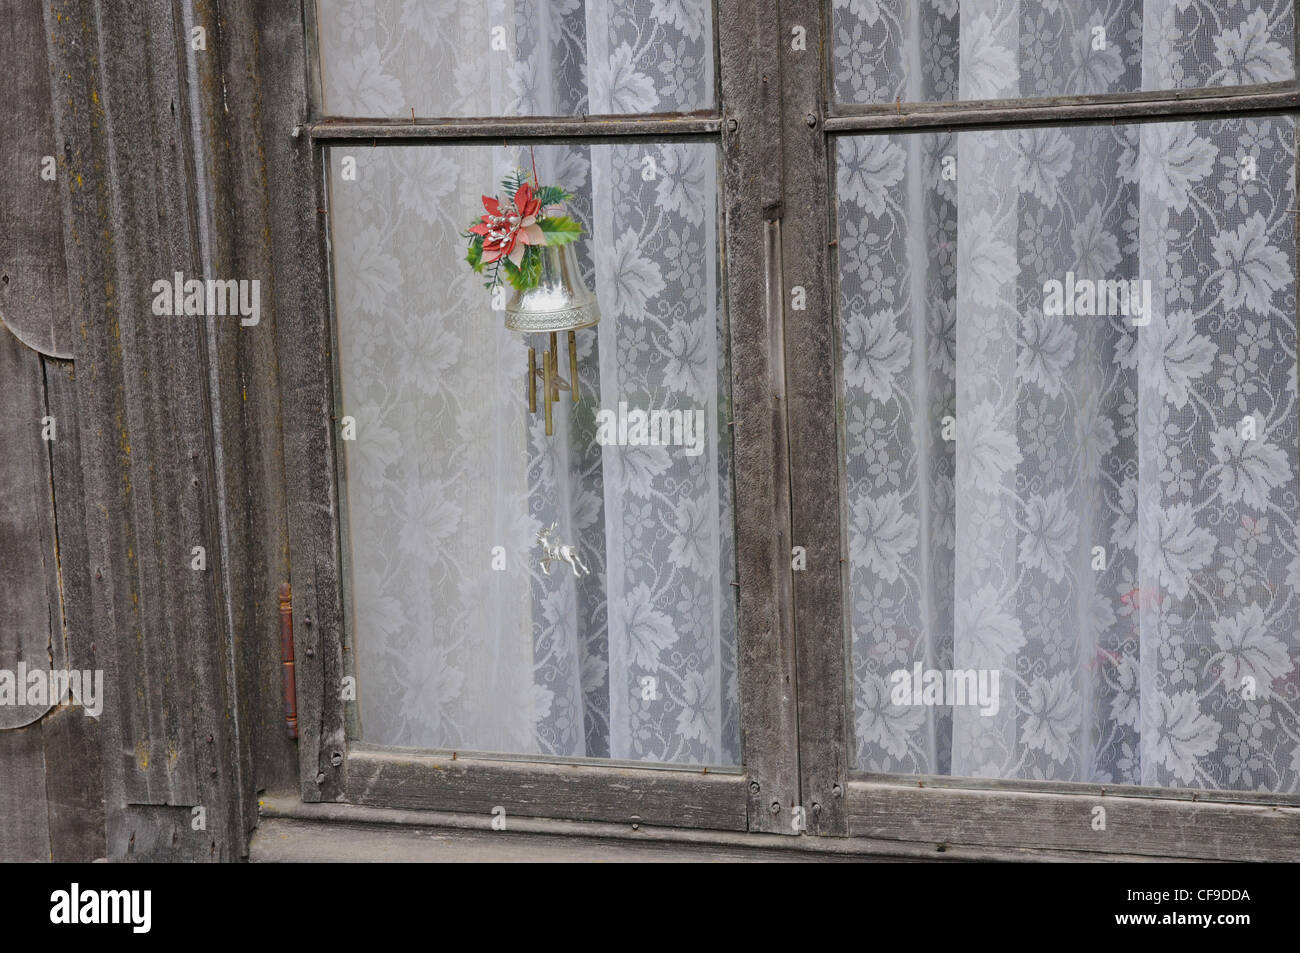 Christmas decorations in wood framed window with floral patterned net curtains. - Stock Image